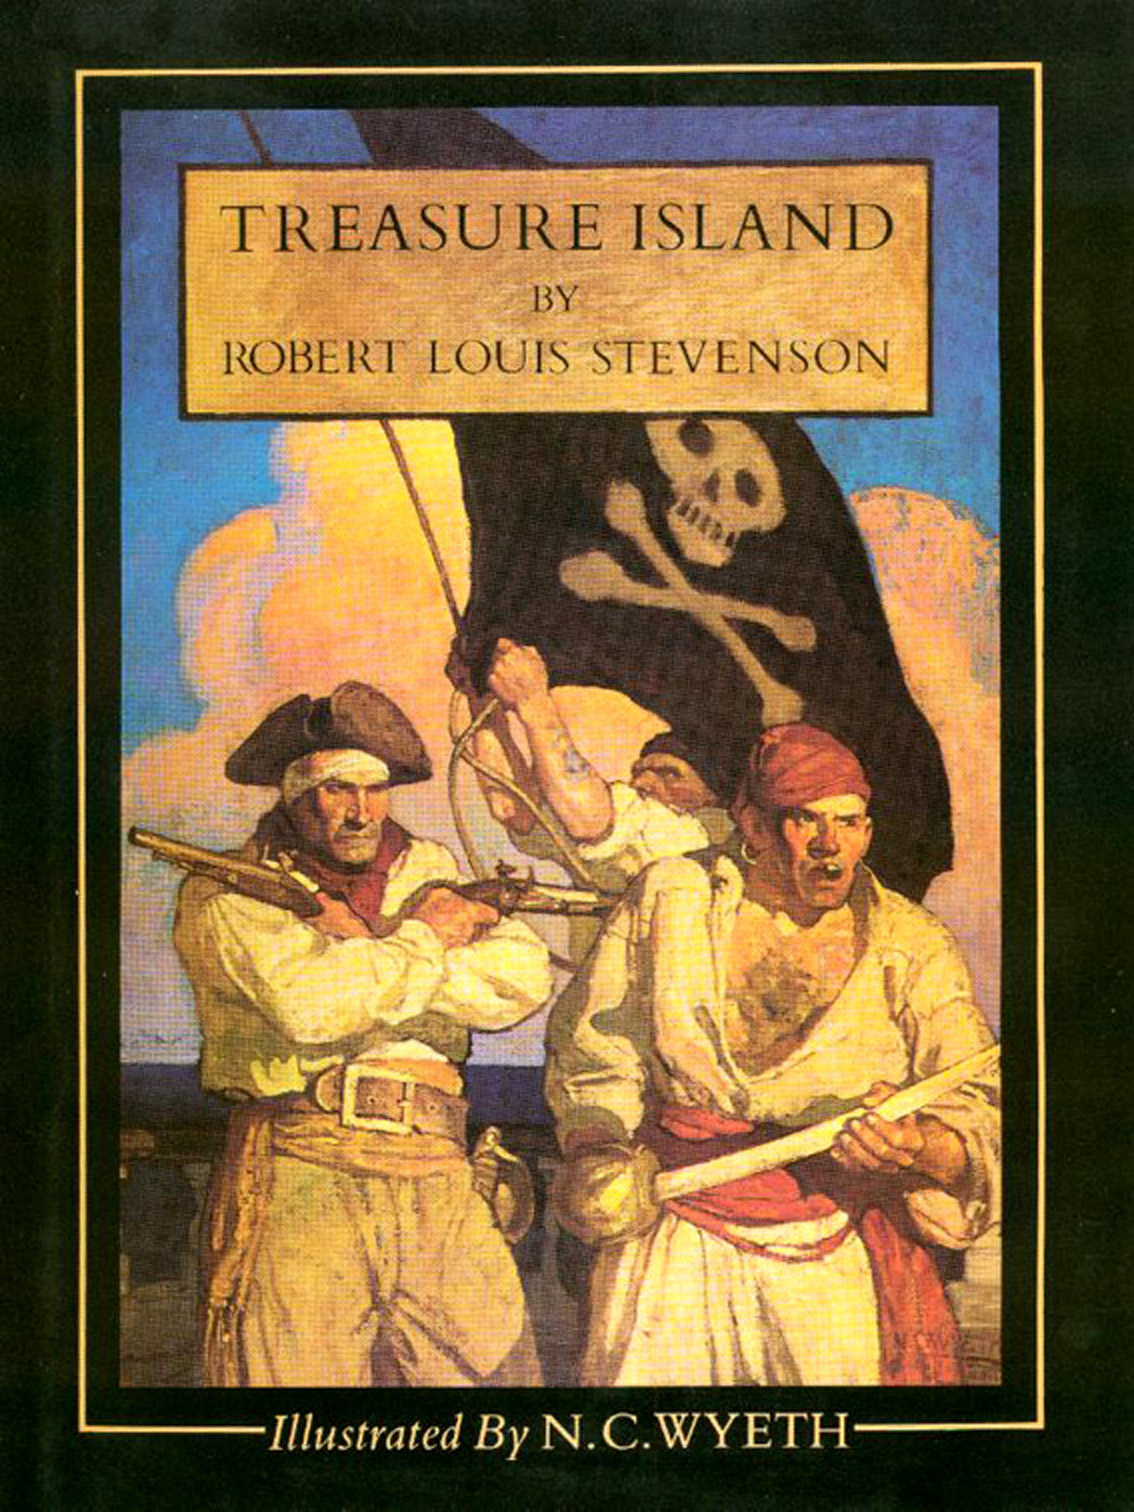 Treasure Island By Robert Louis Stevenson 304 Pp Rl 4